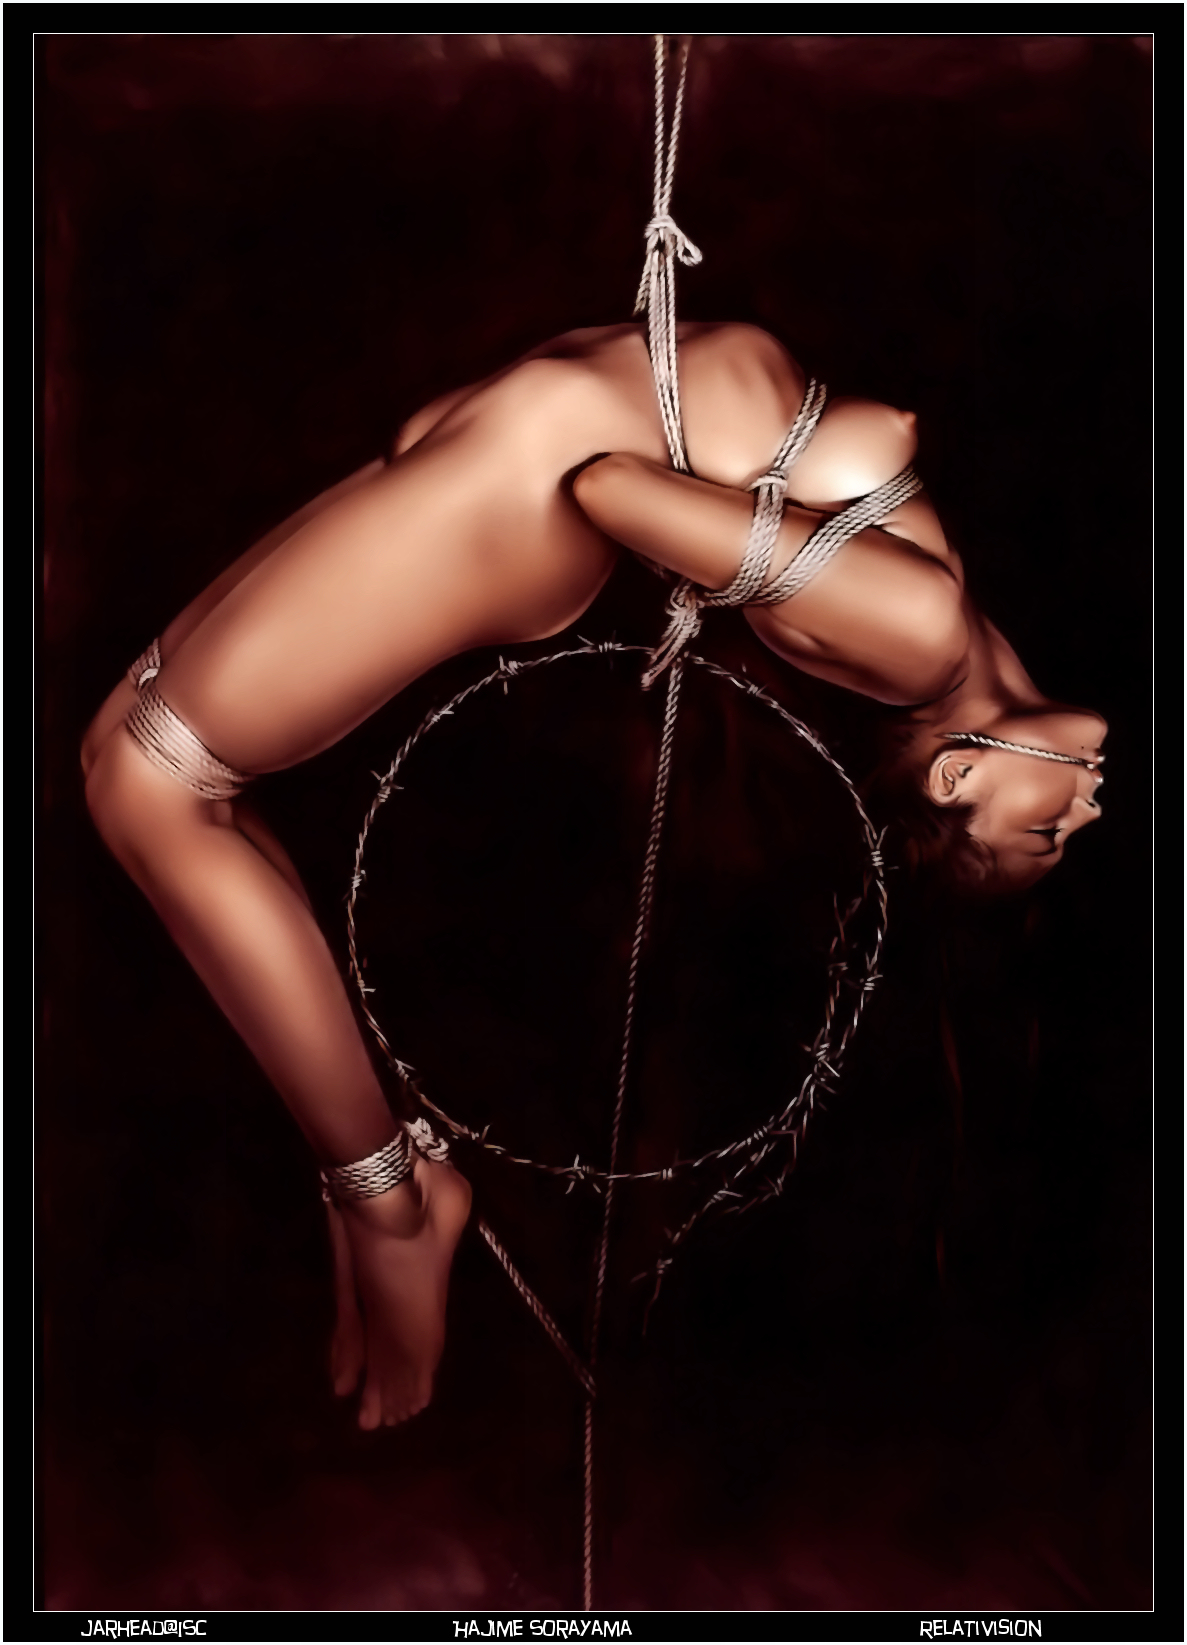 Fantasy bondage art erotic sex video